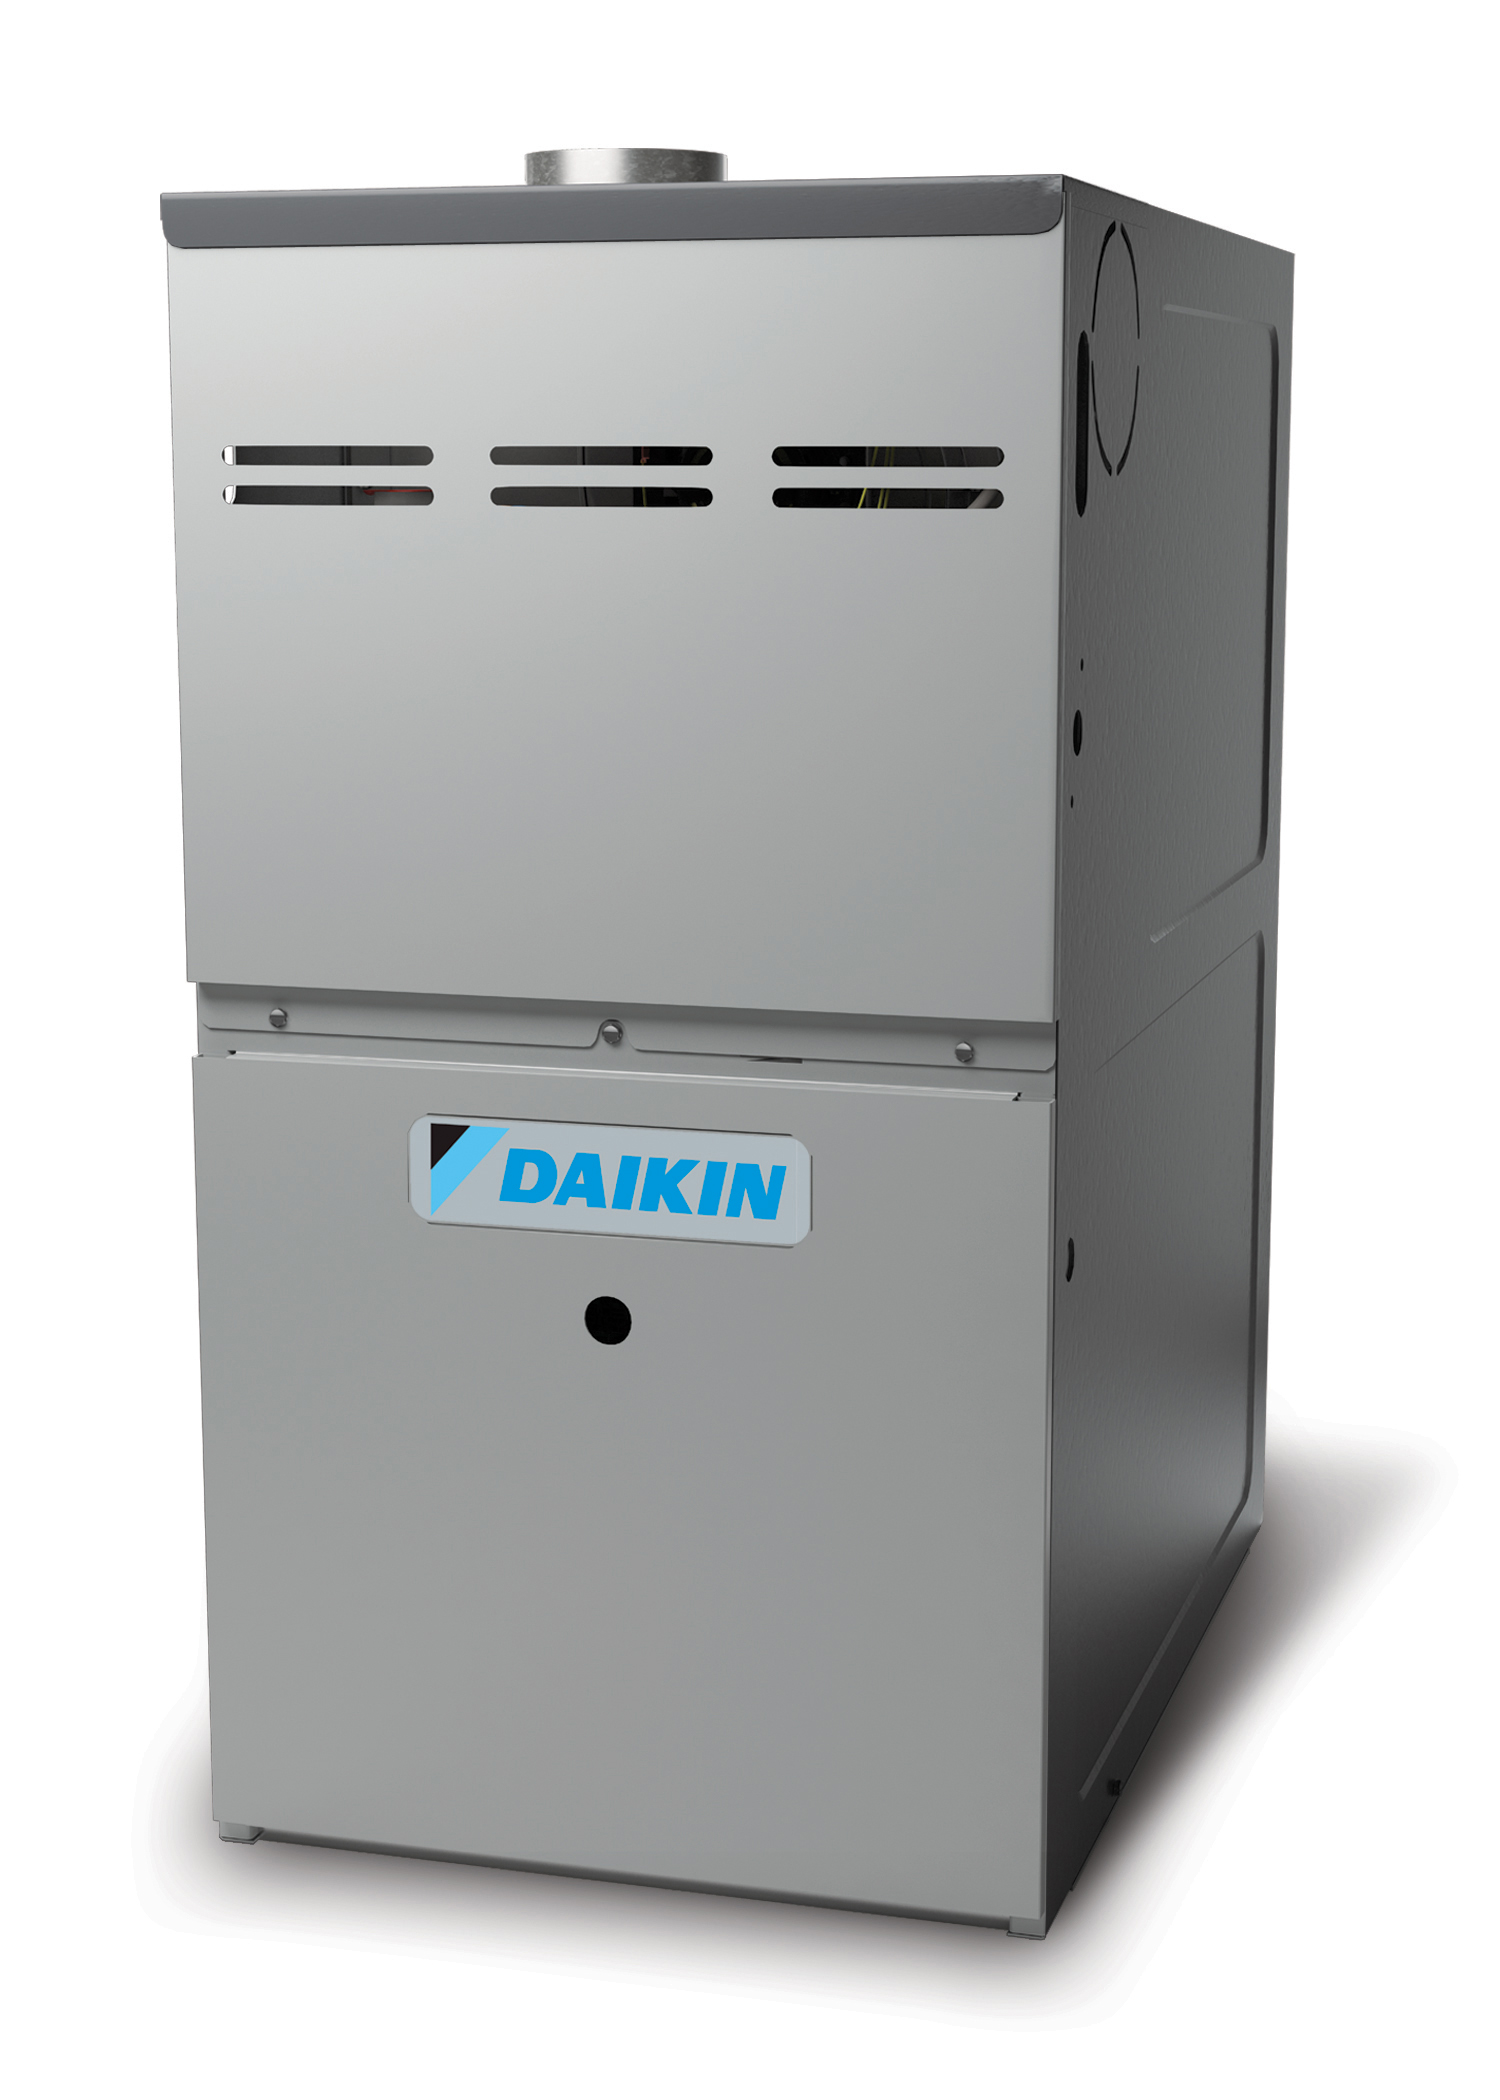 Gas Furnaces - Home Furnace and Heating Systems | Daikin